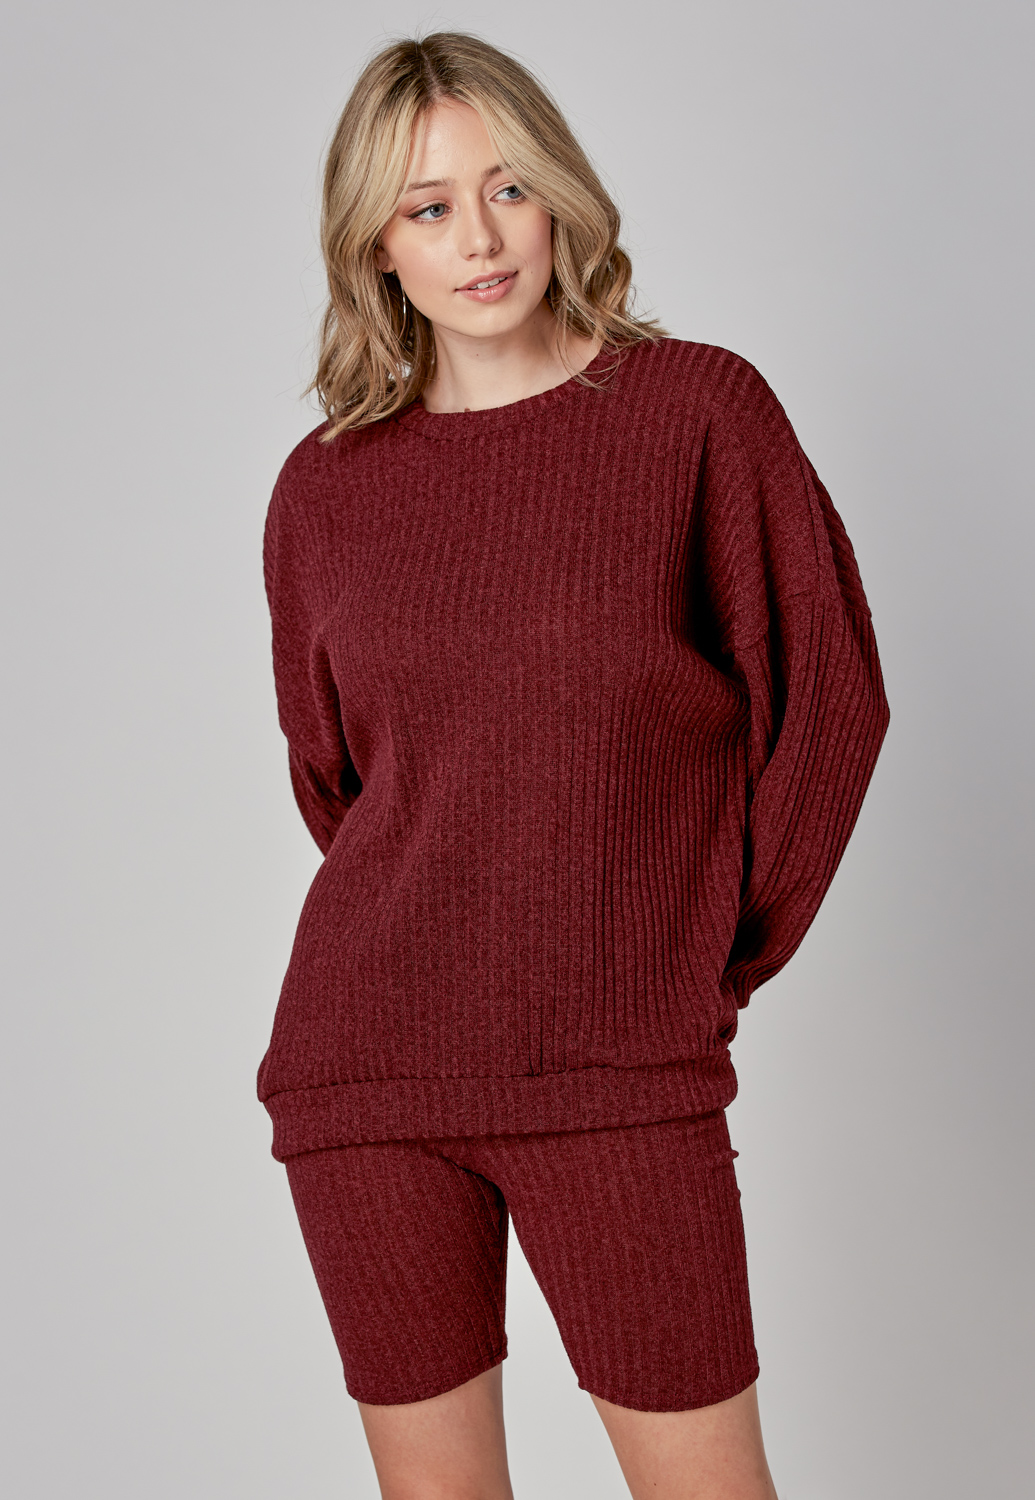 Cozy Knit Top & Pants Set